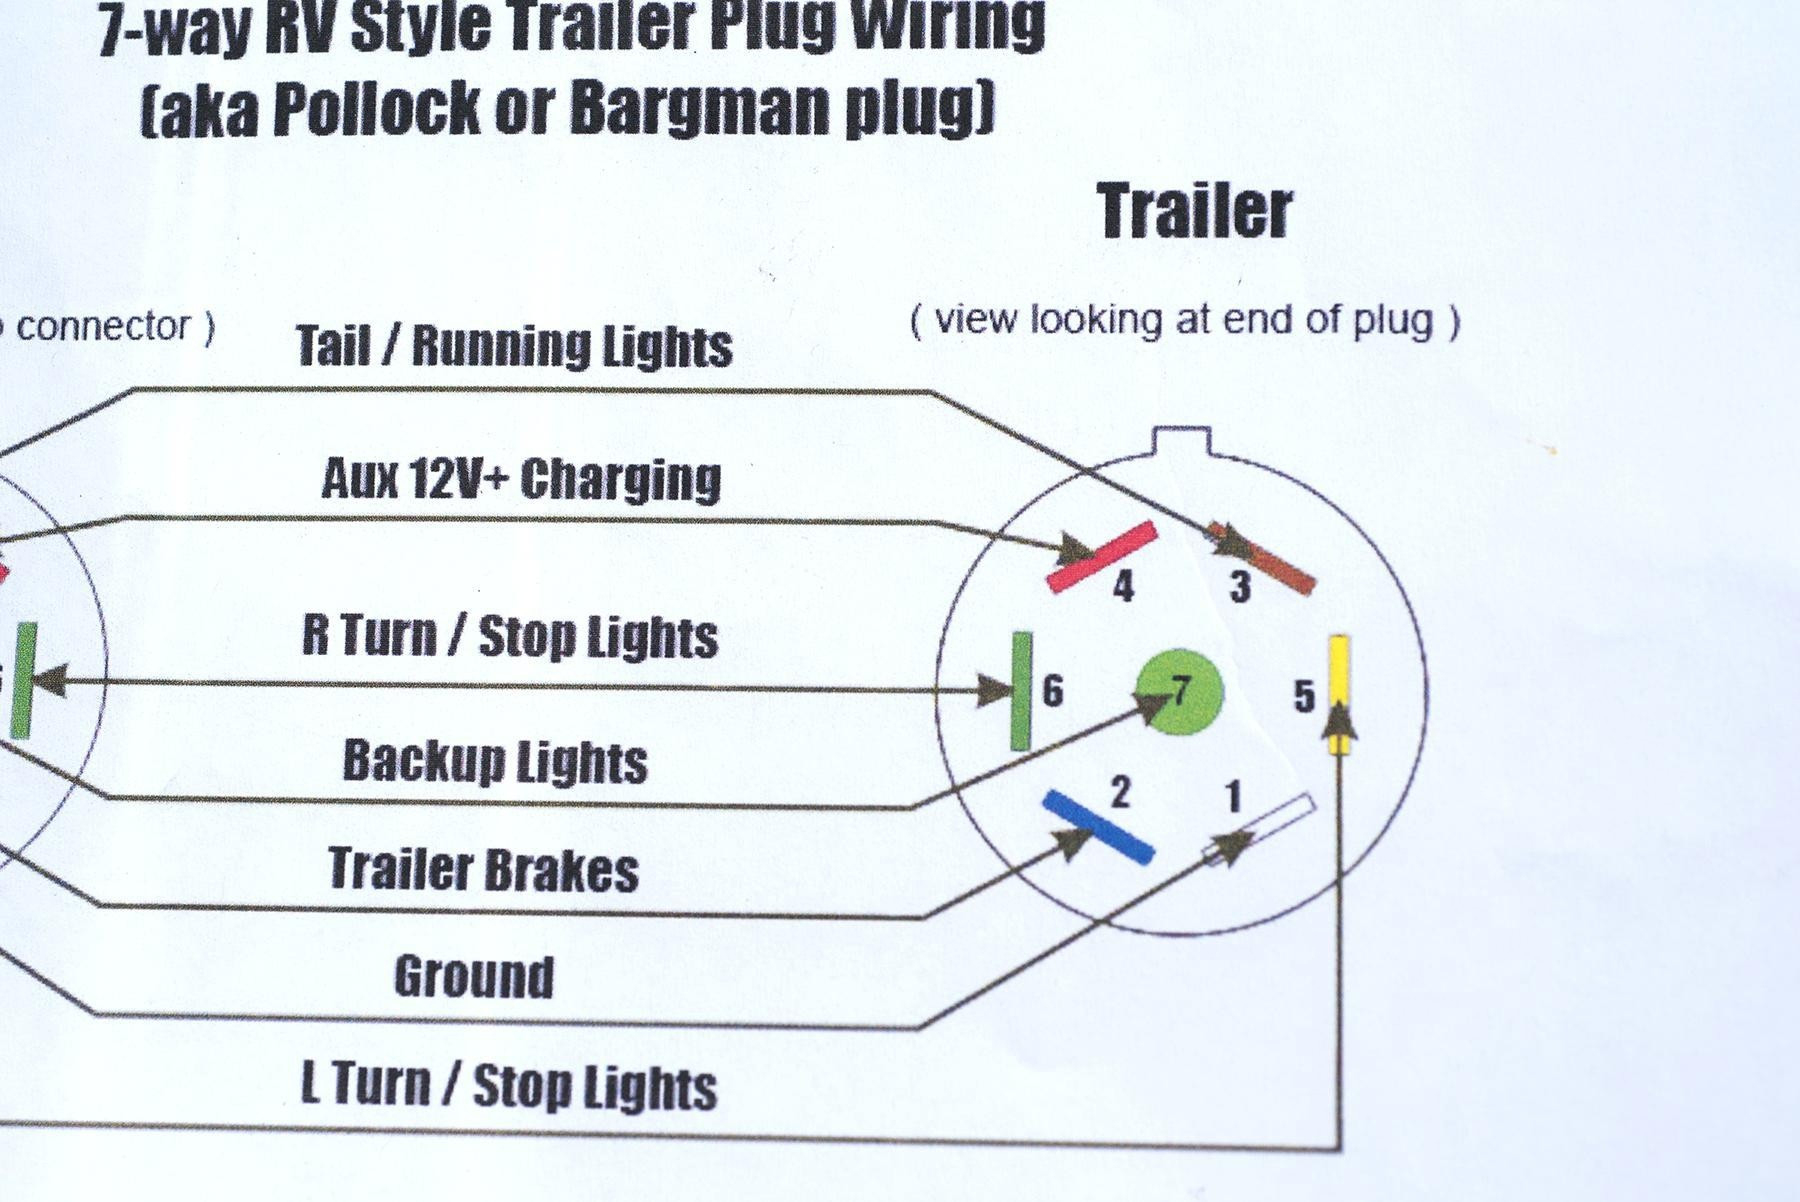 7 rv plug wiring diagram for towing wiring data dedicated rh 14 4 giaf 3dprinting de